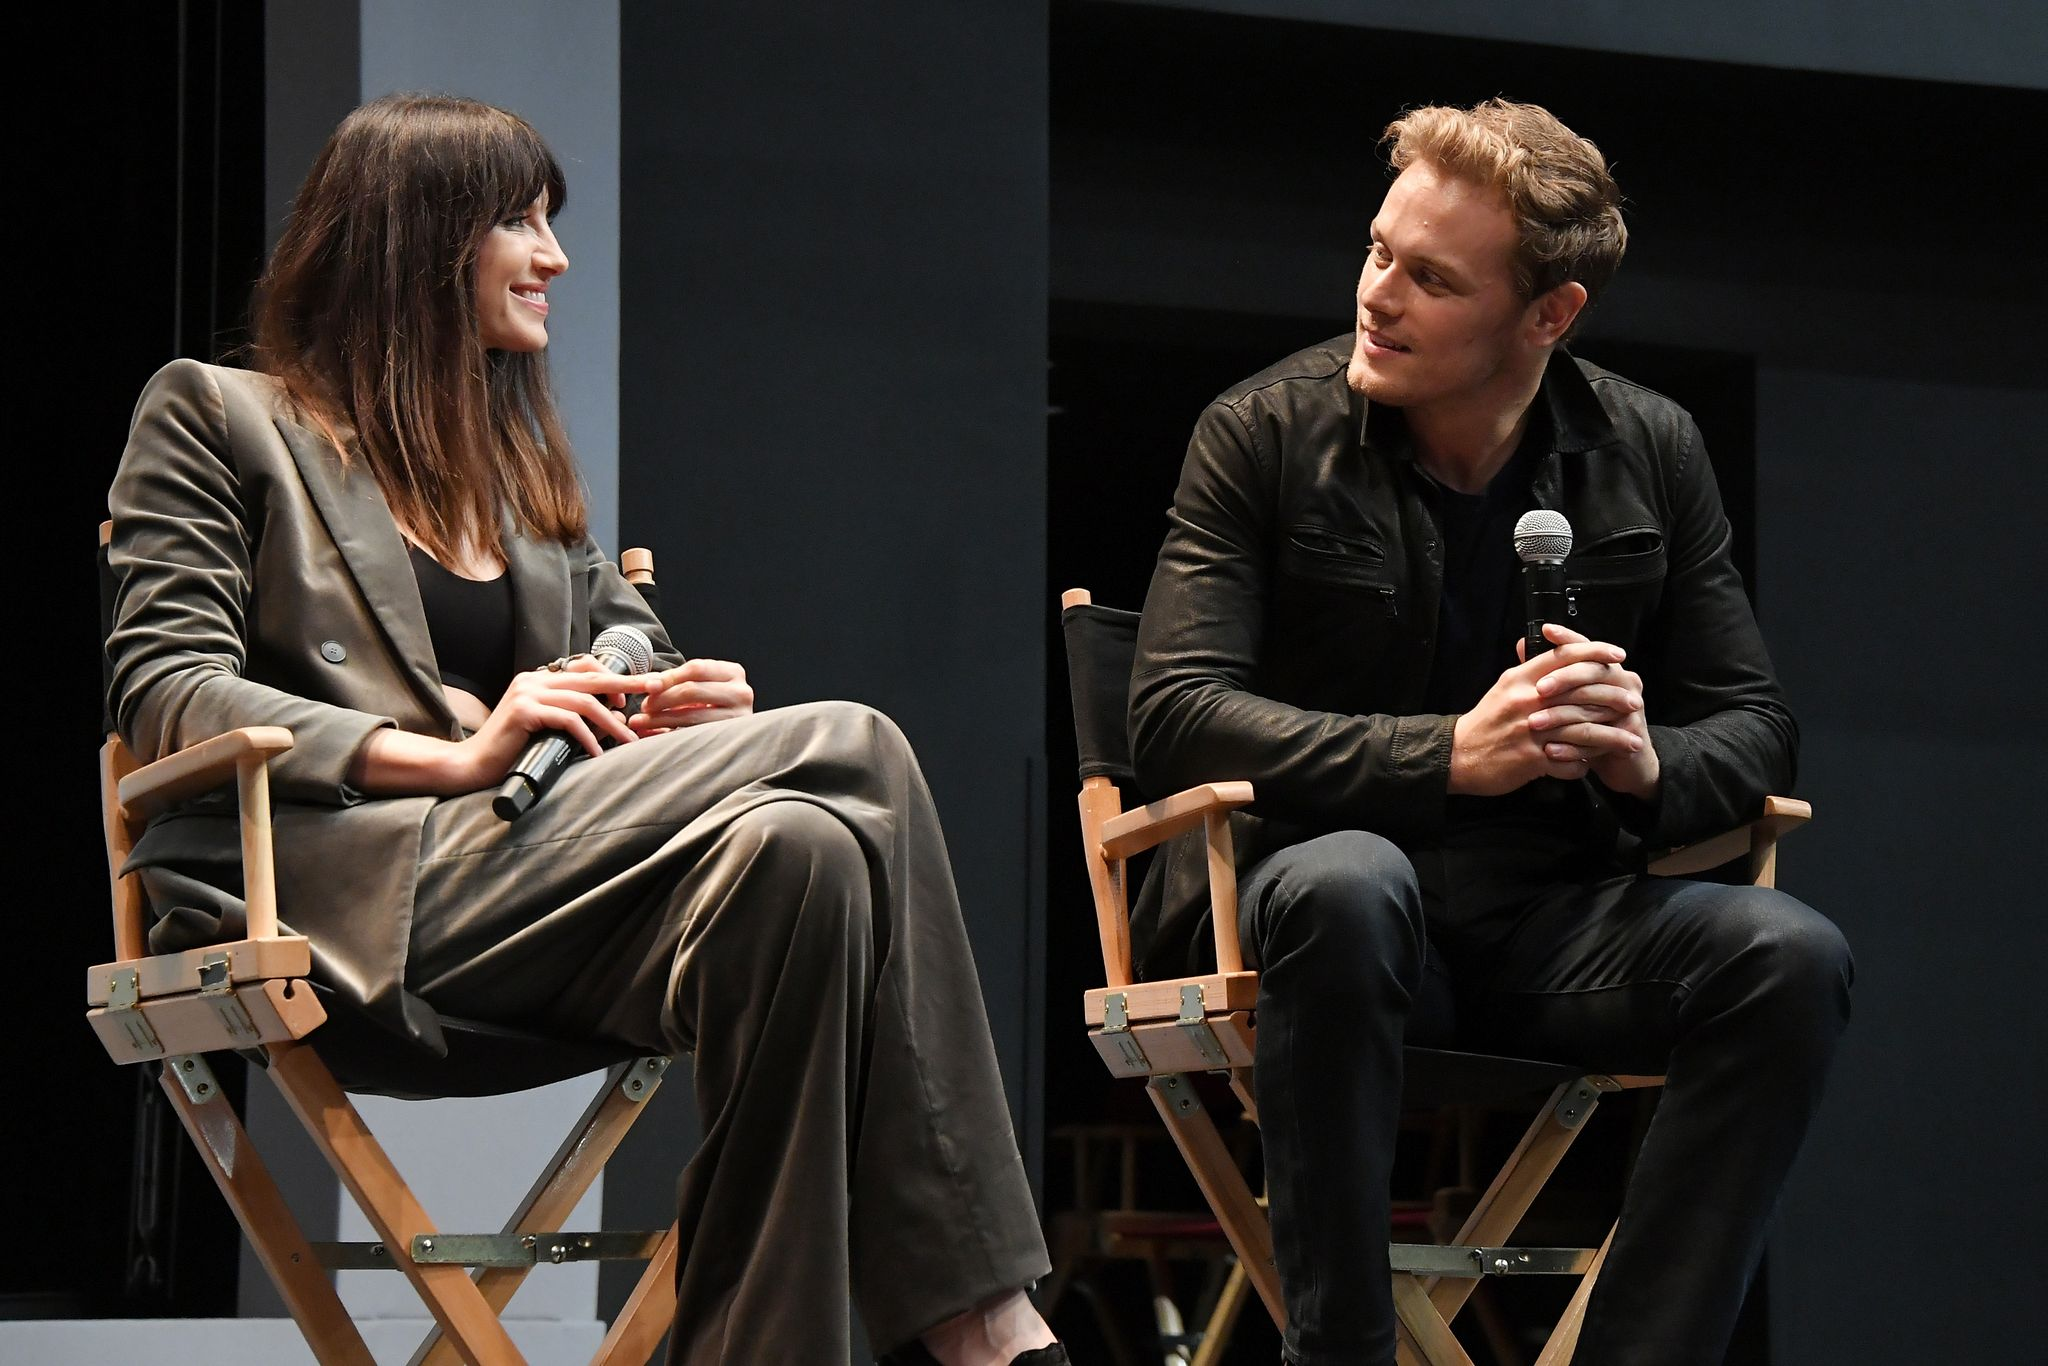 Caitriona Balfe and Sam Heughan participate in a panel discussion after the New York Red Carpet Premiere of Outlander Season Three / Getty Images